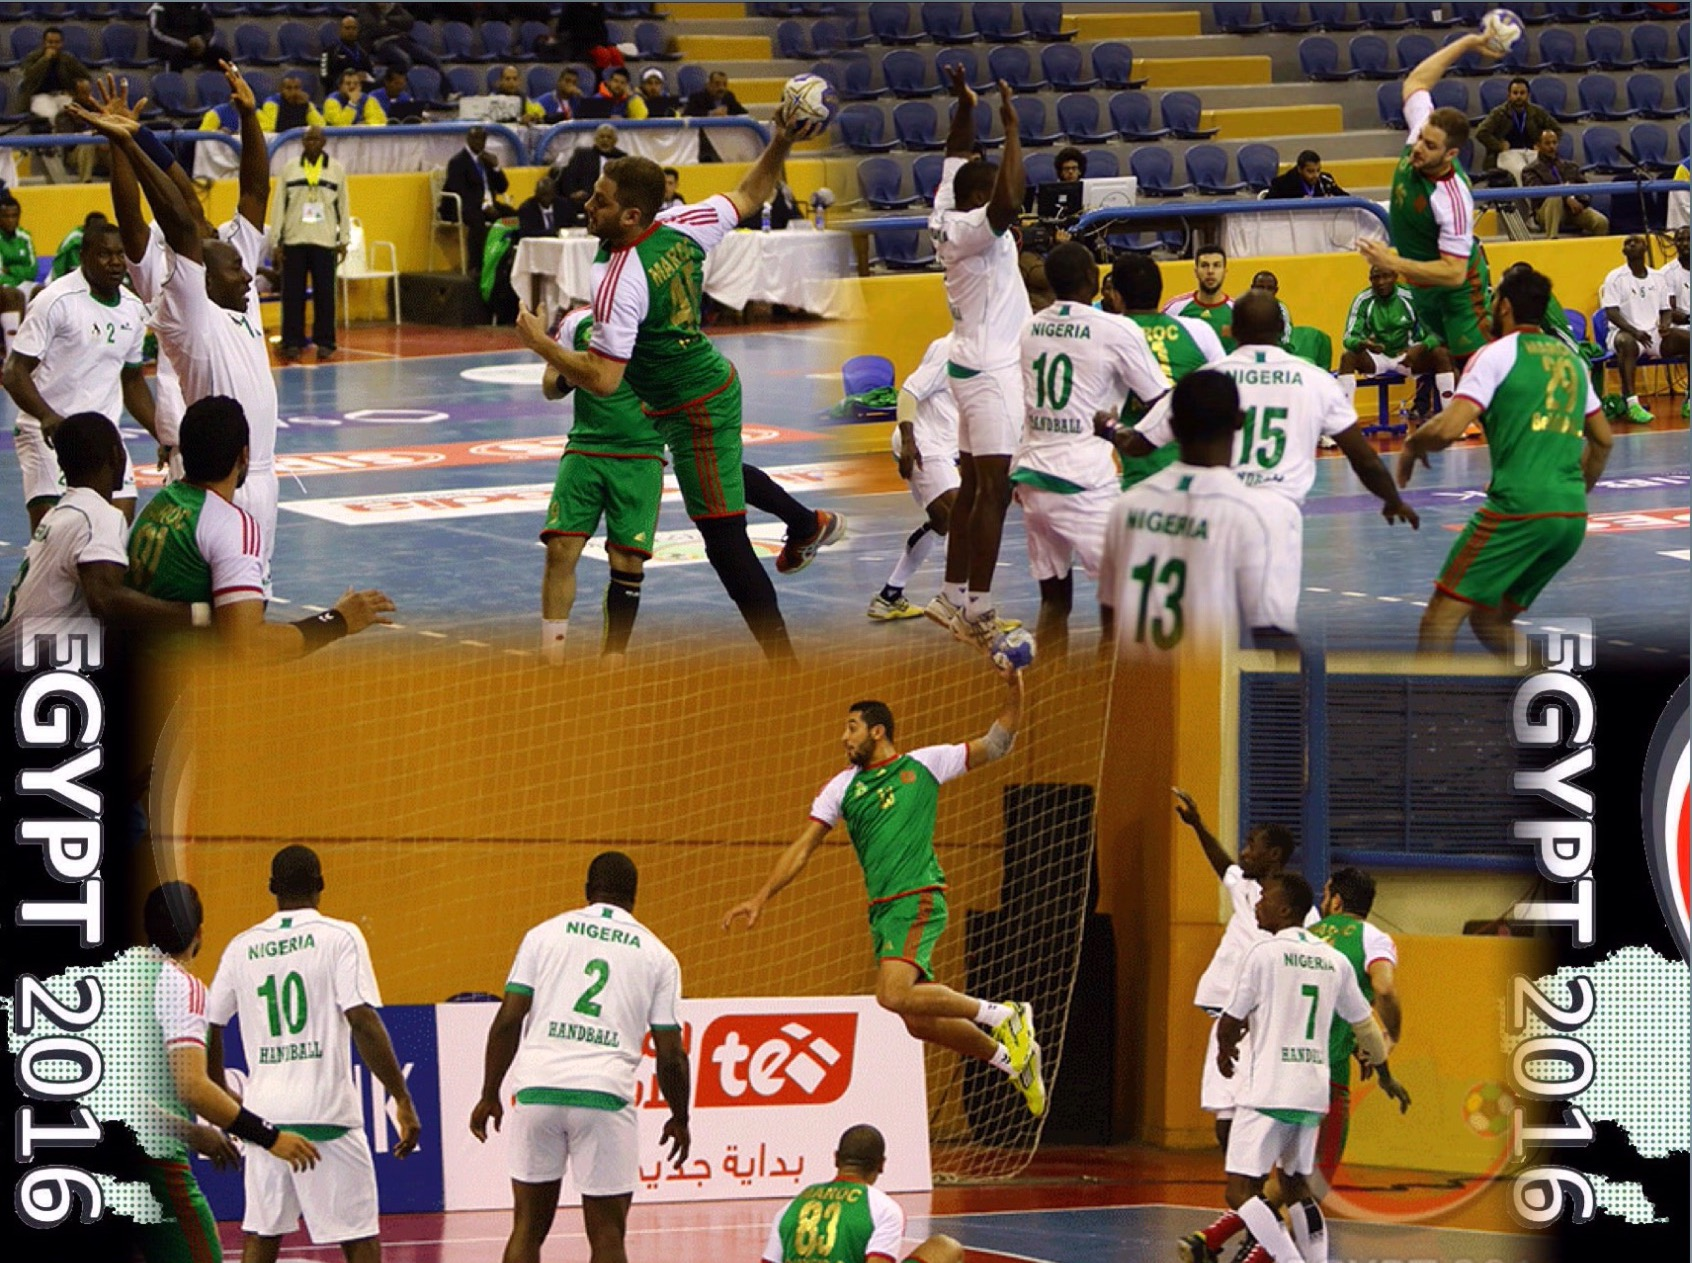 Handball AFCON: Nigeria Lose Third Match Vs Morocco